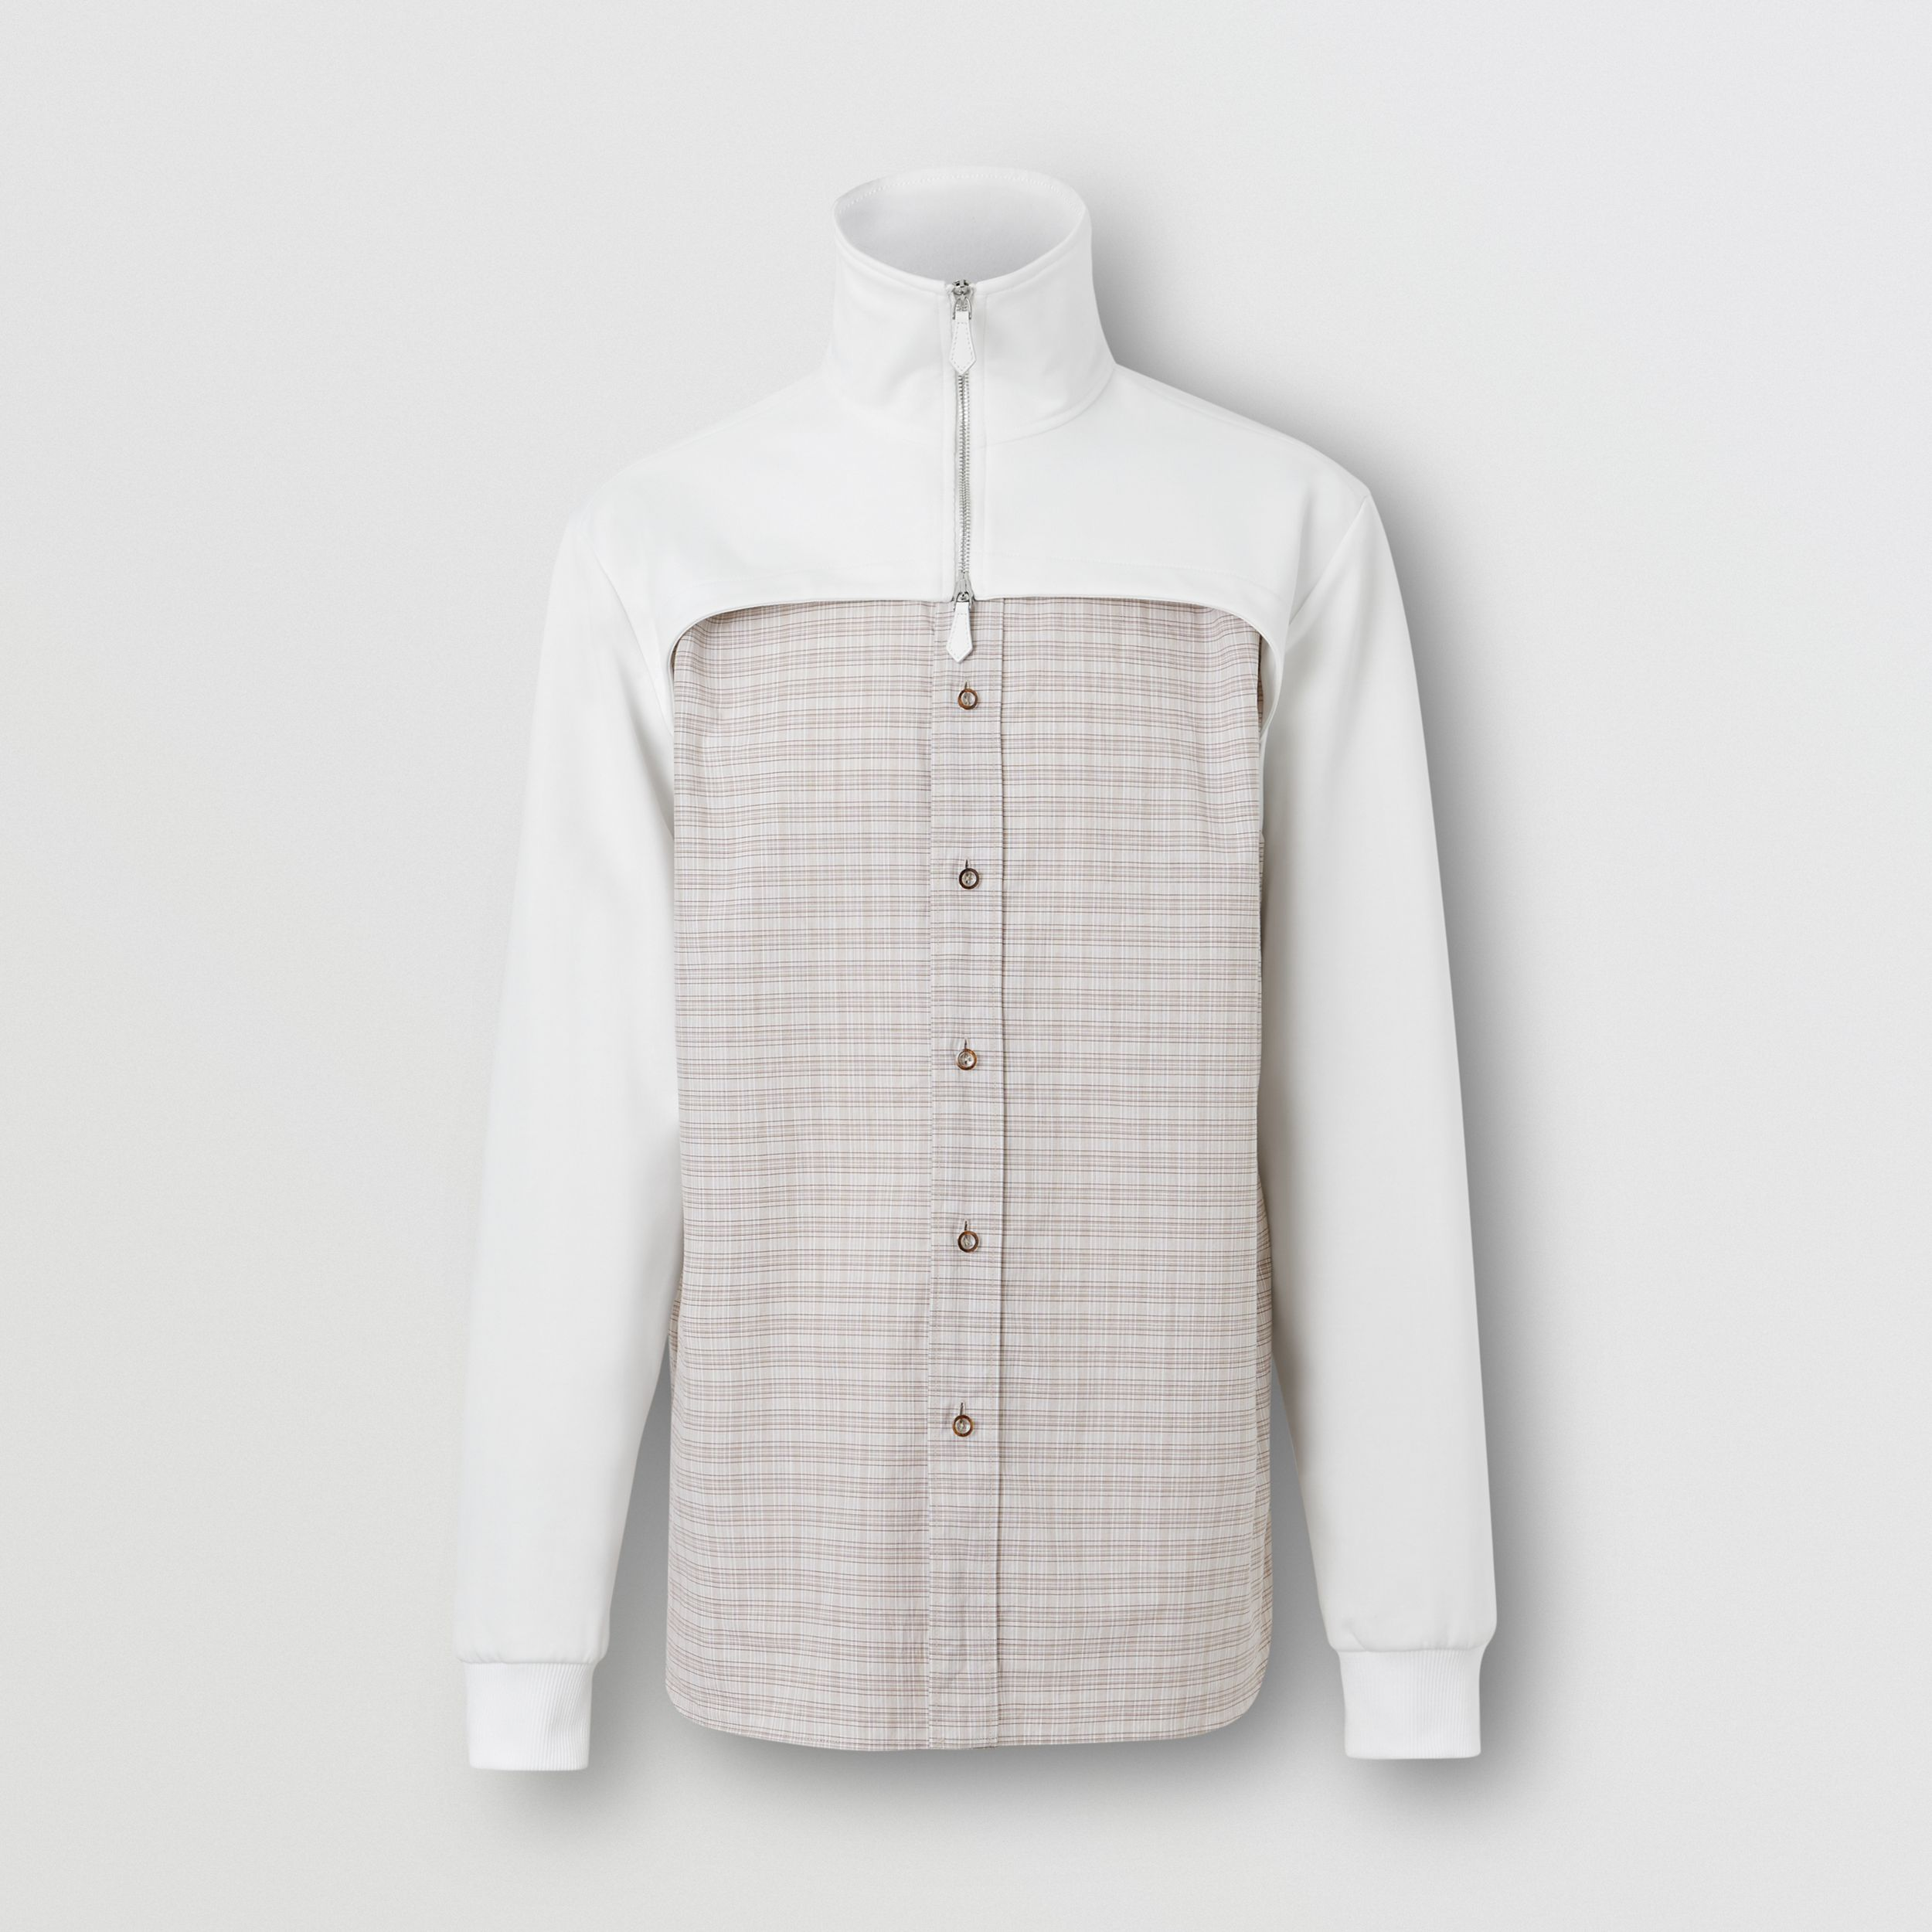 Track Top Detail Small Scale Check Cotton Shirt in Beige/natural White - Men | Burberry - 4